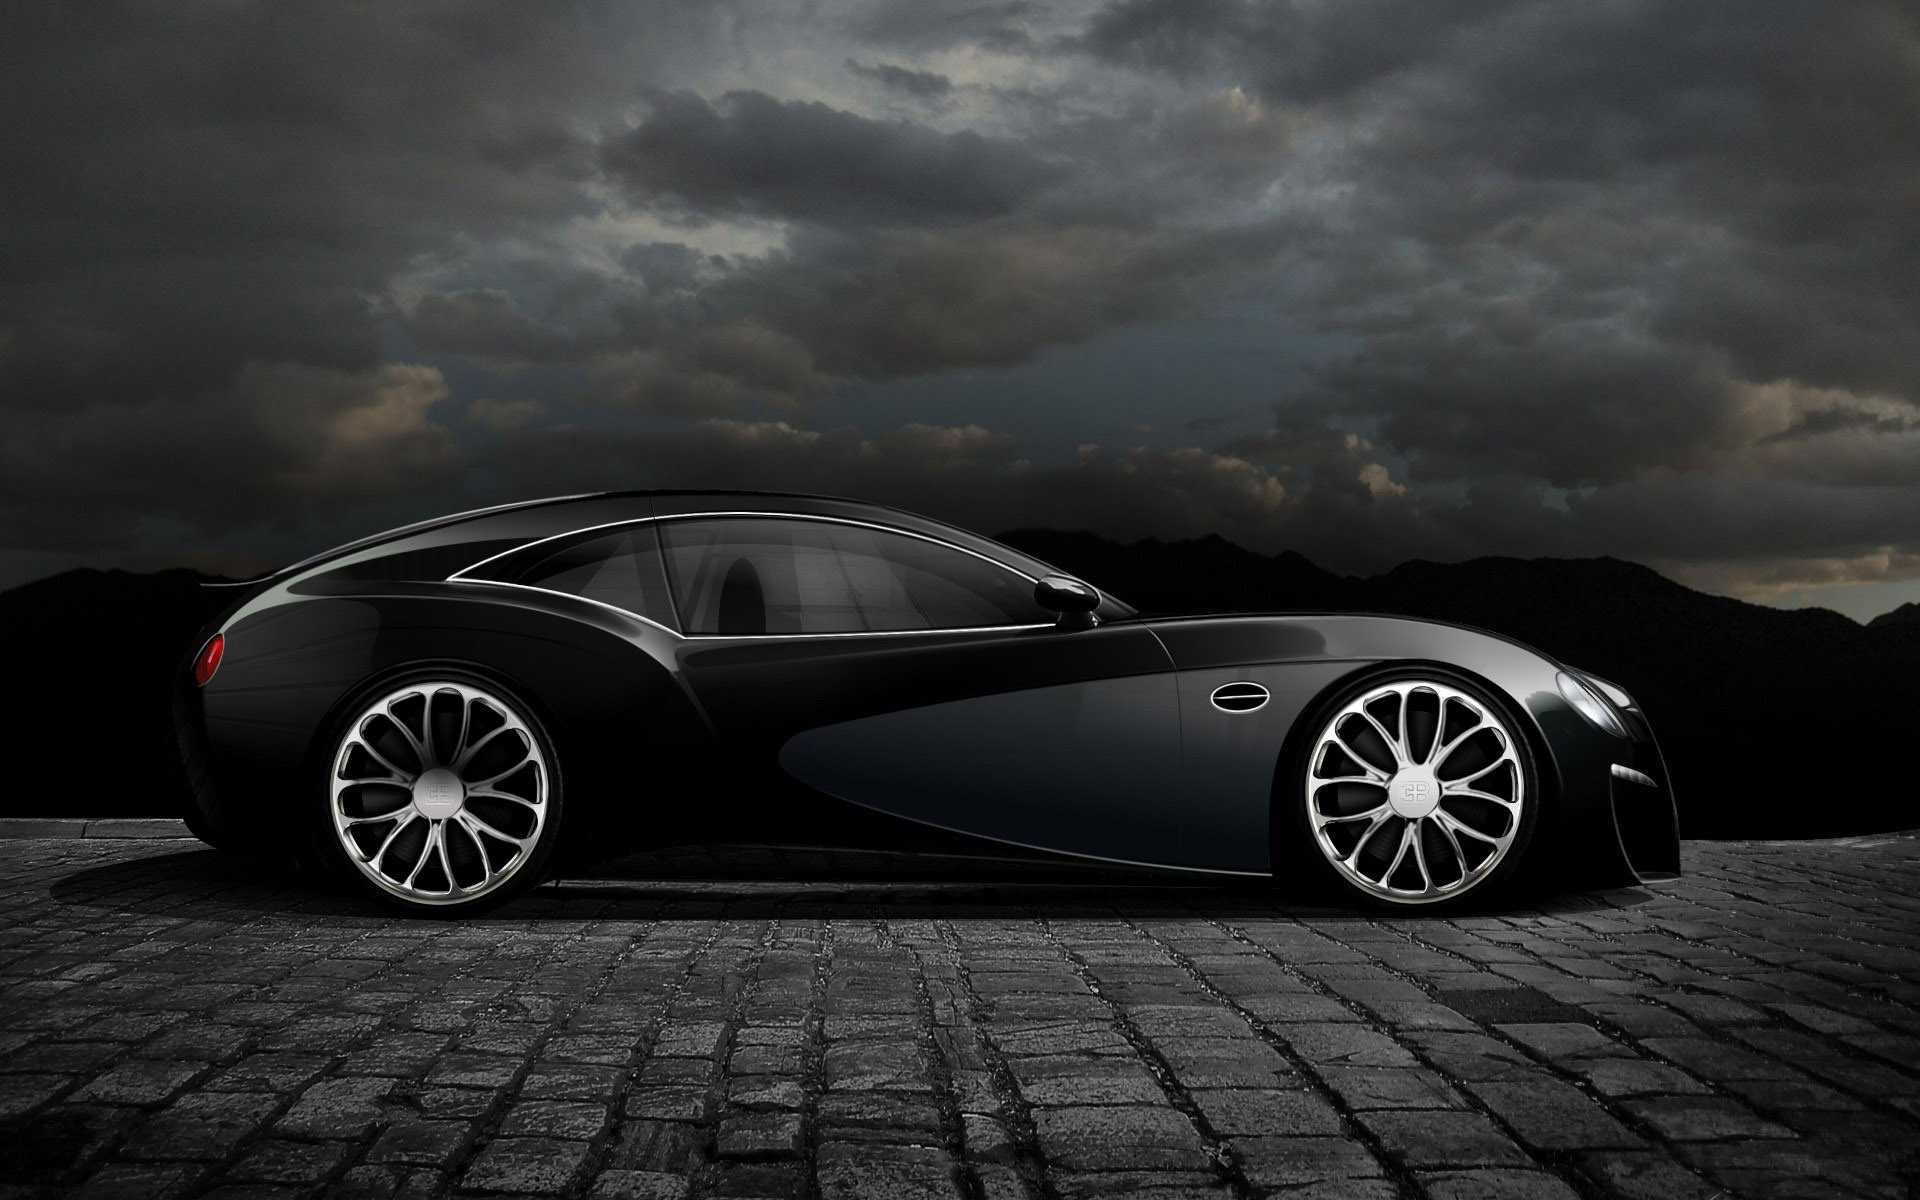 Black Cars Wallpaper 9 Desktop Background Hdblackwallpaper Com